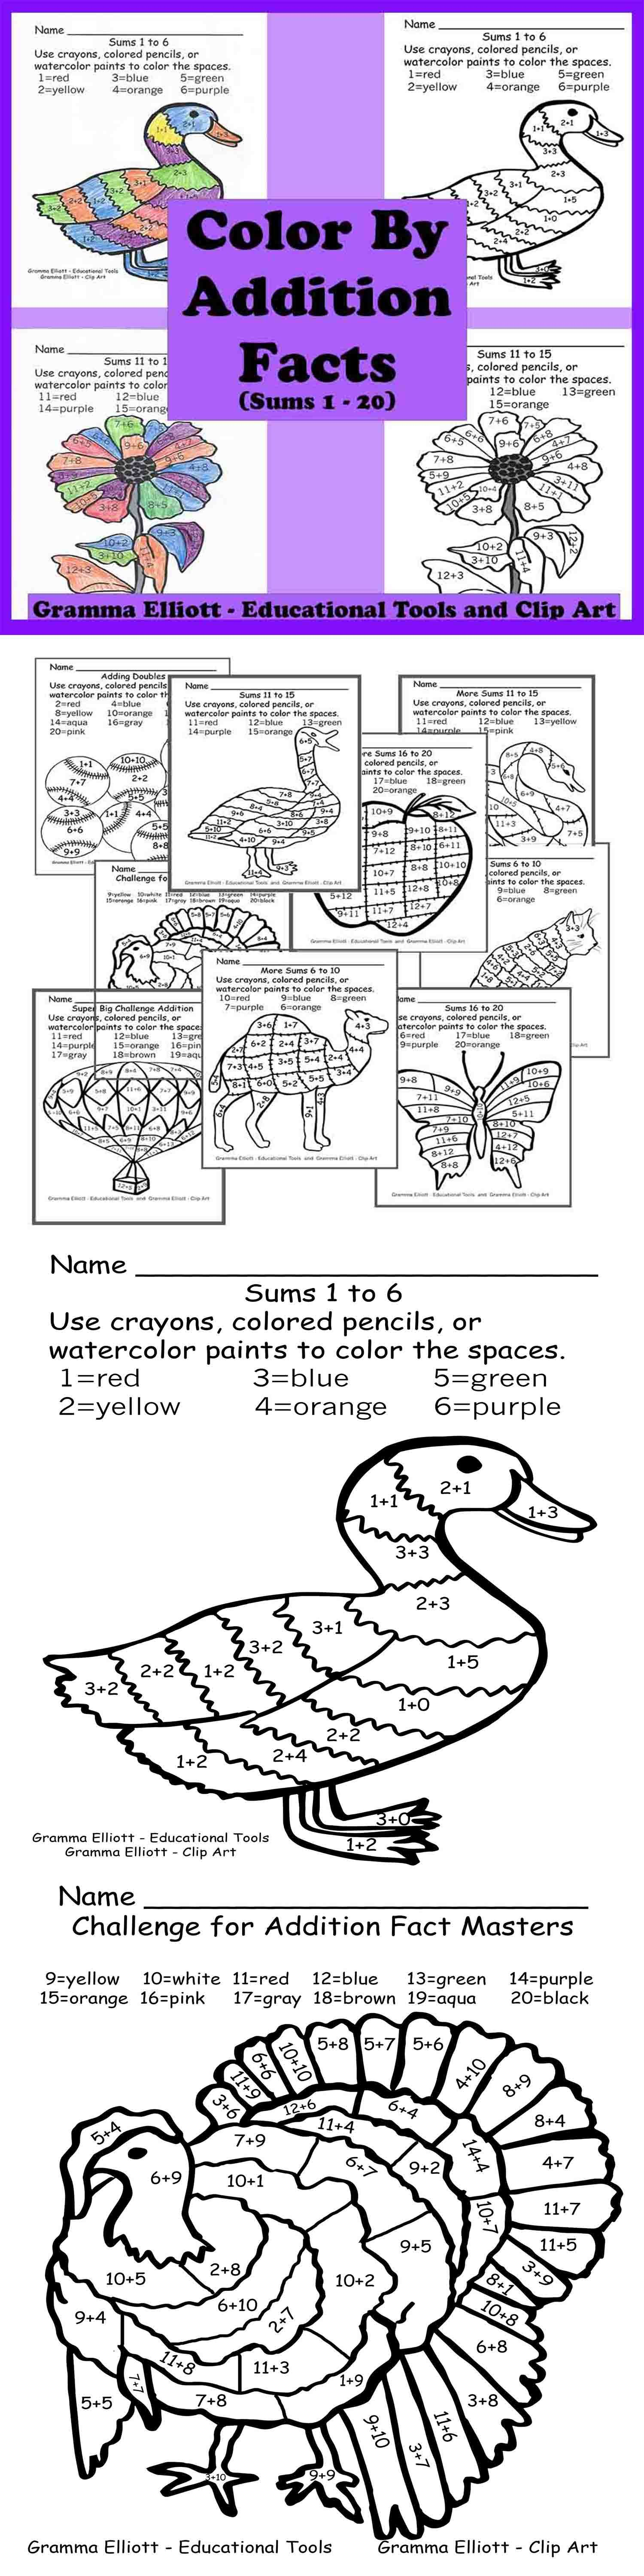 27 What Is Special About A Radioactive Cat Math Worksheet